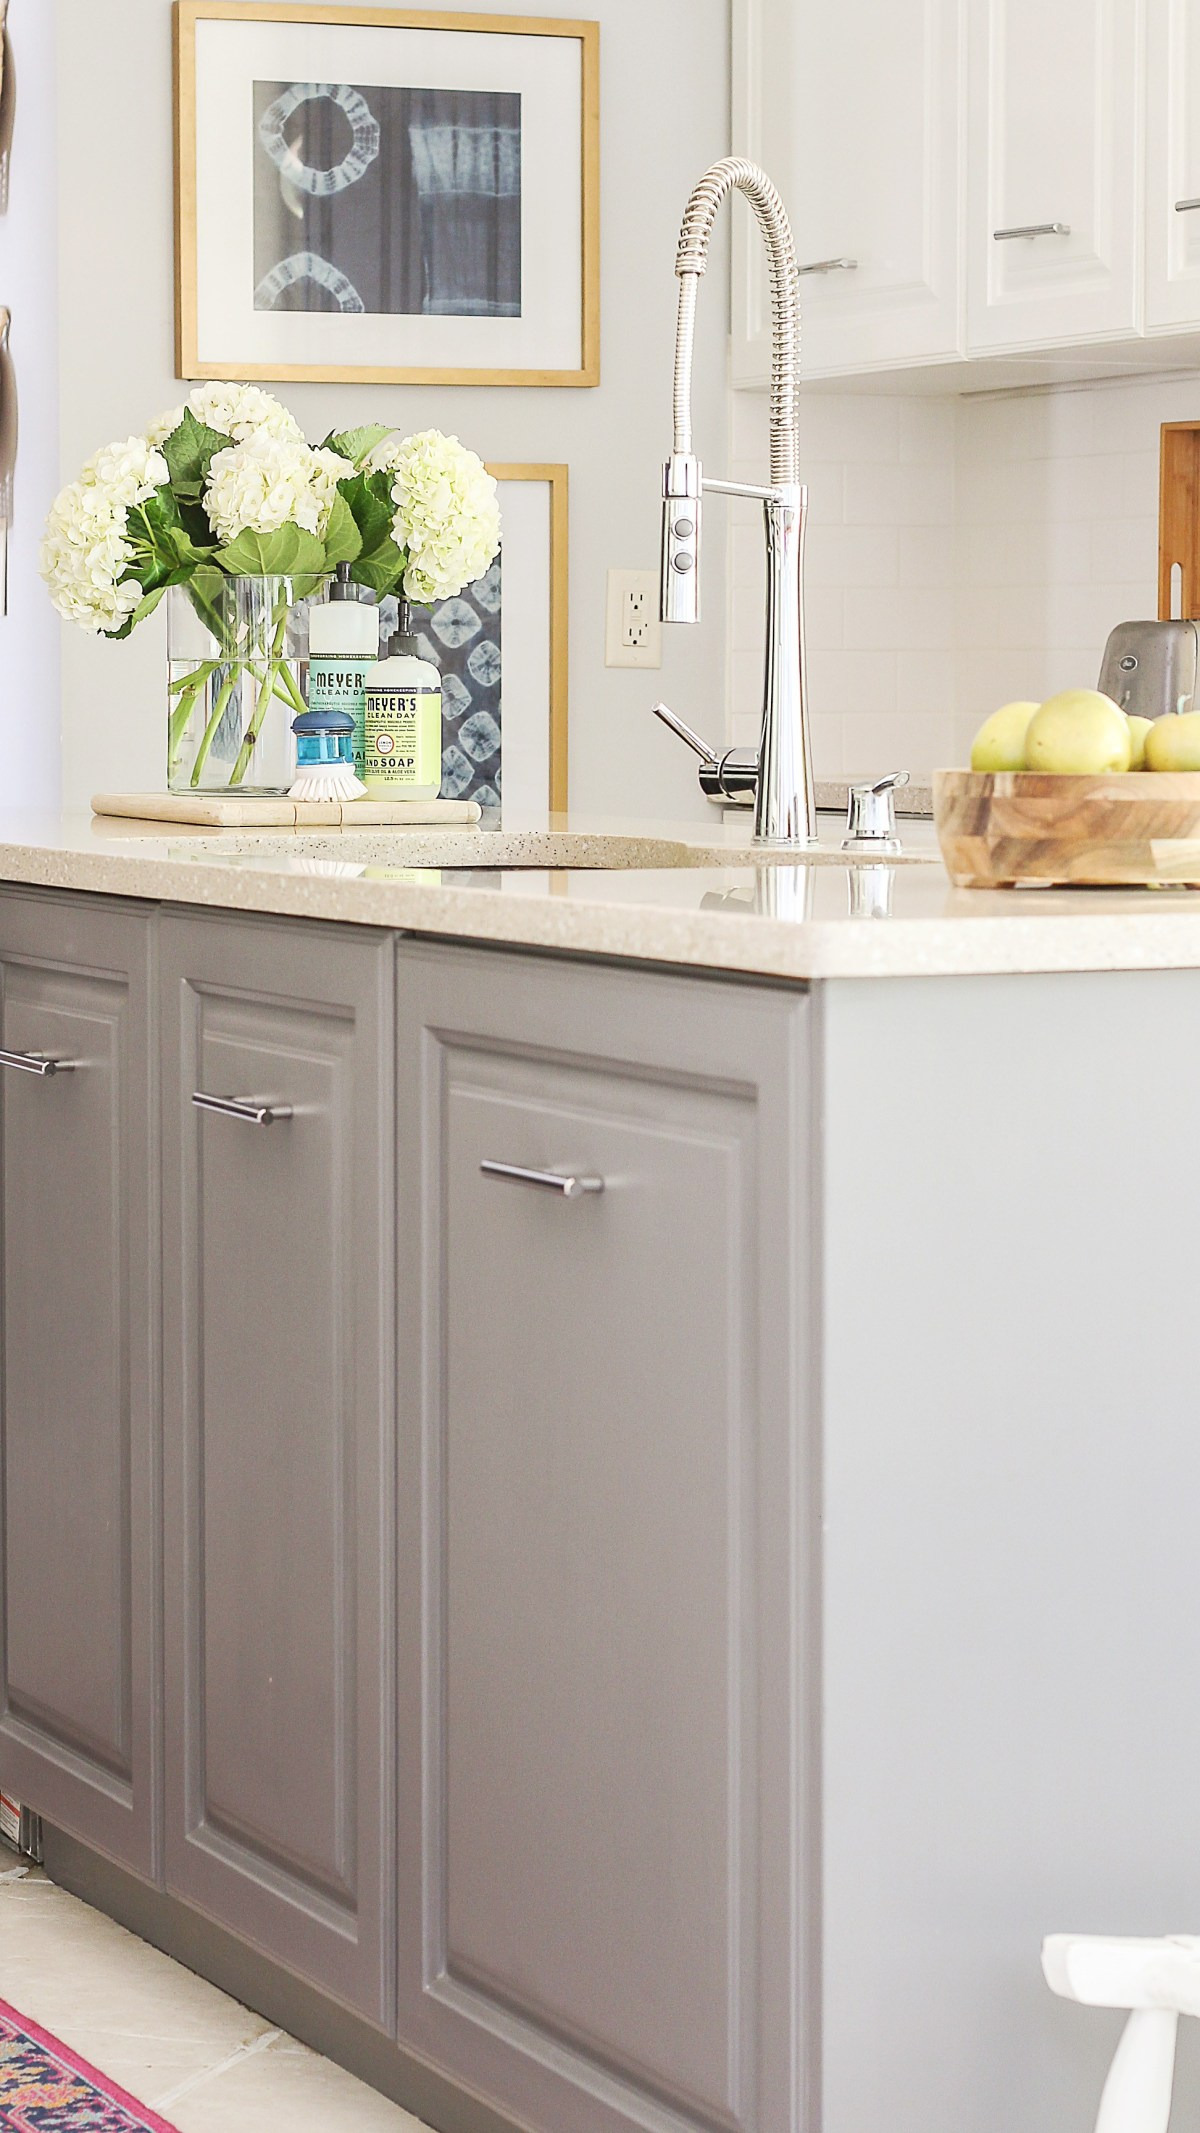 How to Paint Cabinet Doors Awesome Fastest Way to Paint Kitchen Cabinets the Ultimate Hack